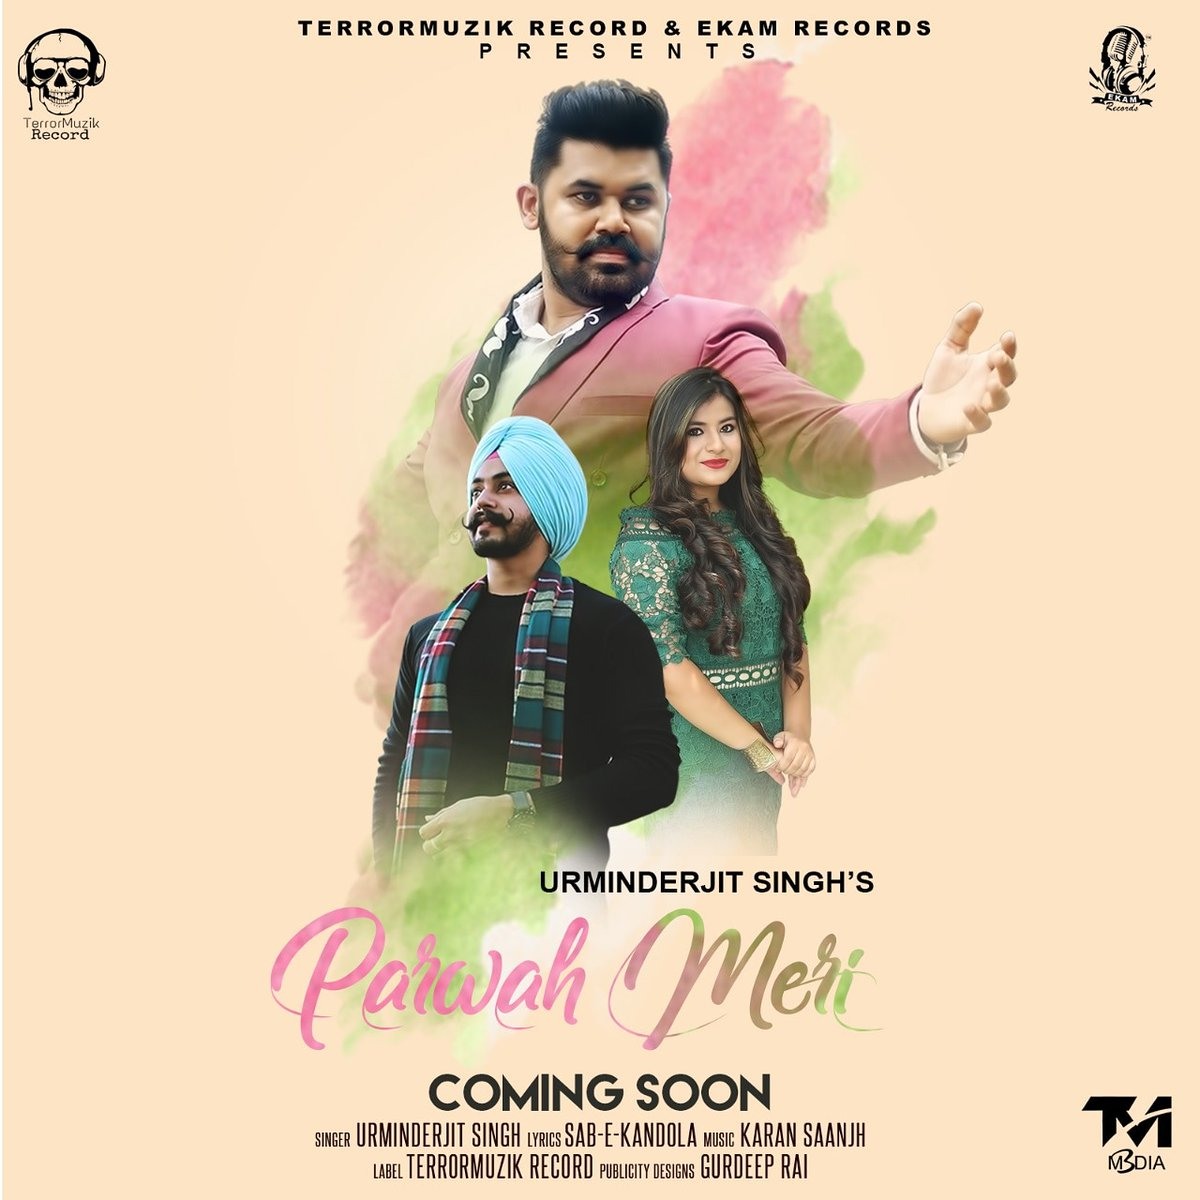 Haan Karde Akhil New Punjabi Song Mp3 Download: BhangraReleases.com / Cutting Edge Music News Urminderjit